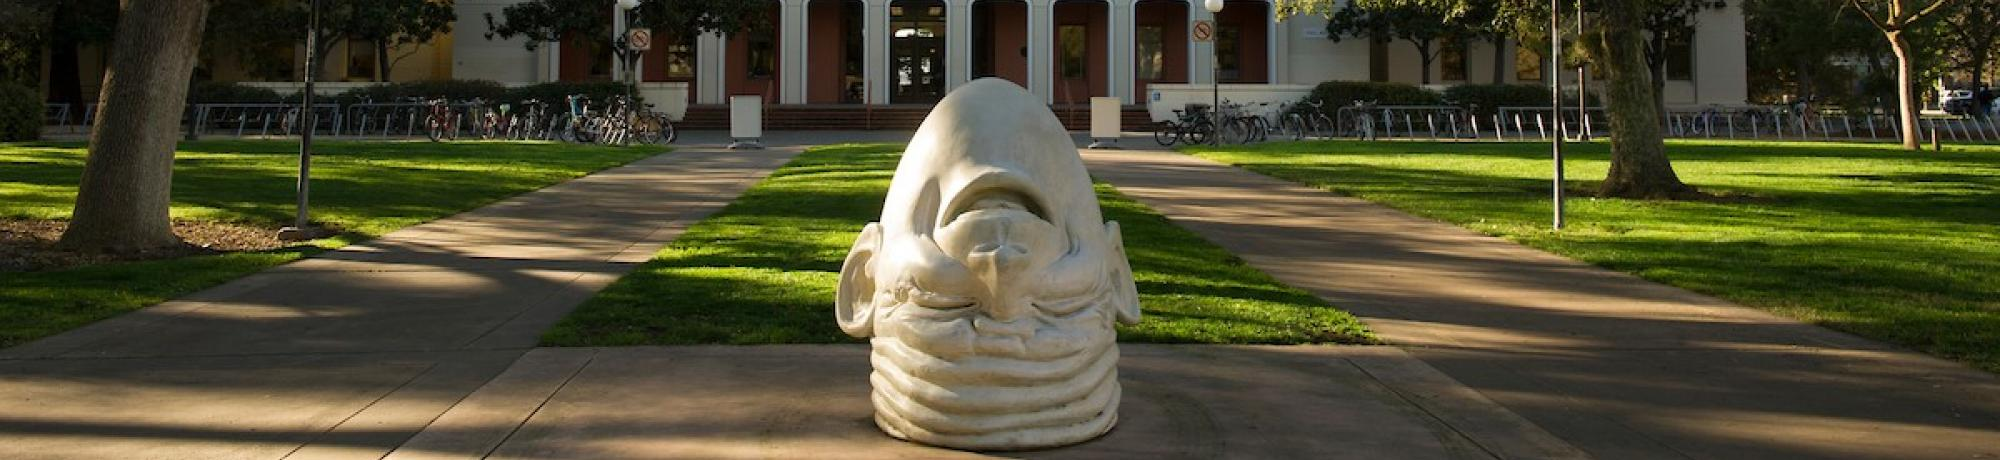 Egghead in front of Mrak Hall